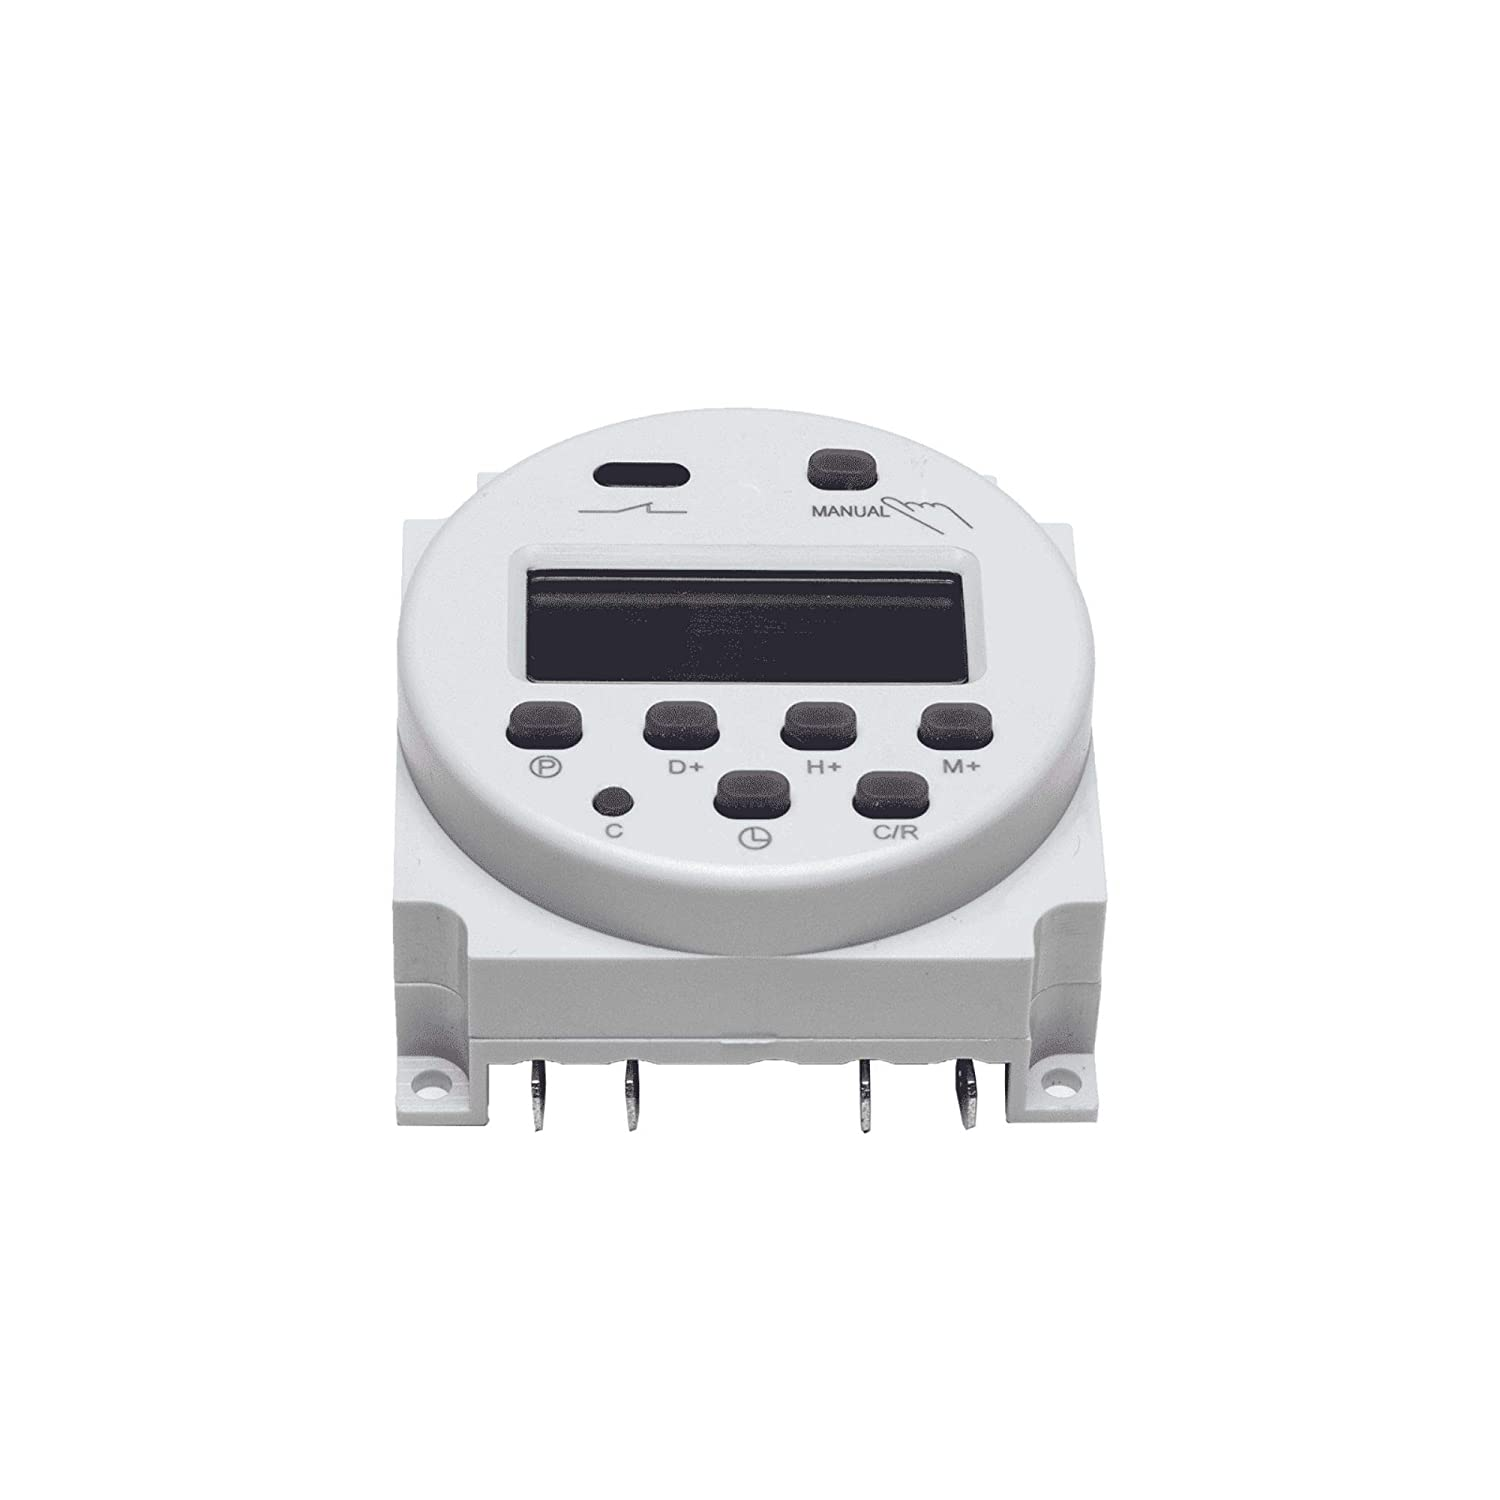 Digital Programmable Tucson Mall Timer Switch 12VDC 16A - Mail order